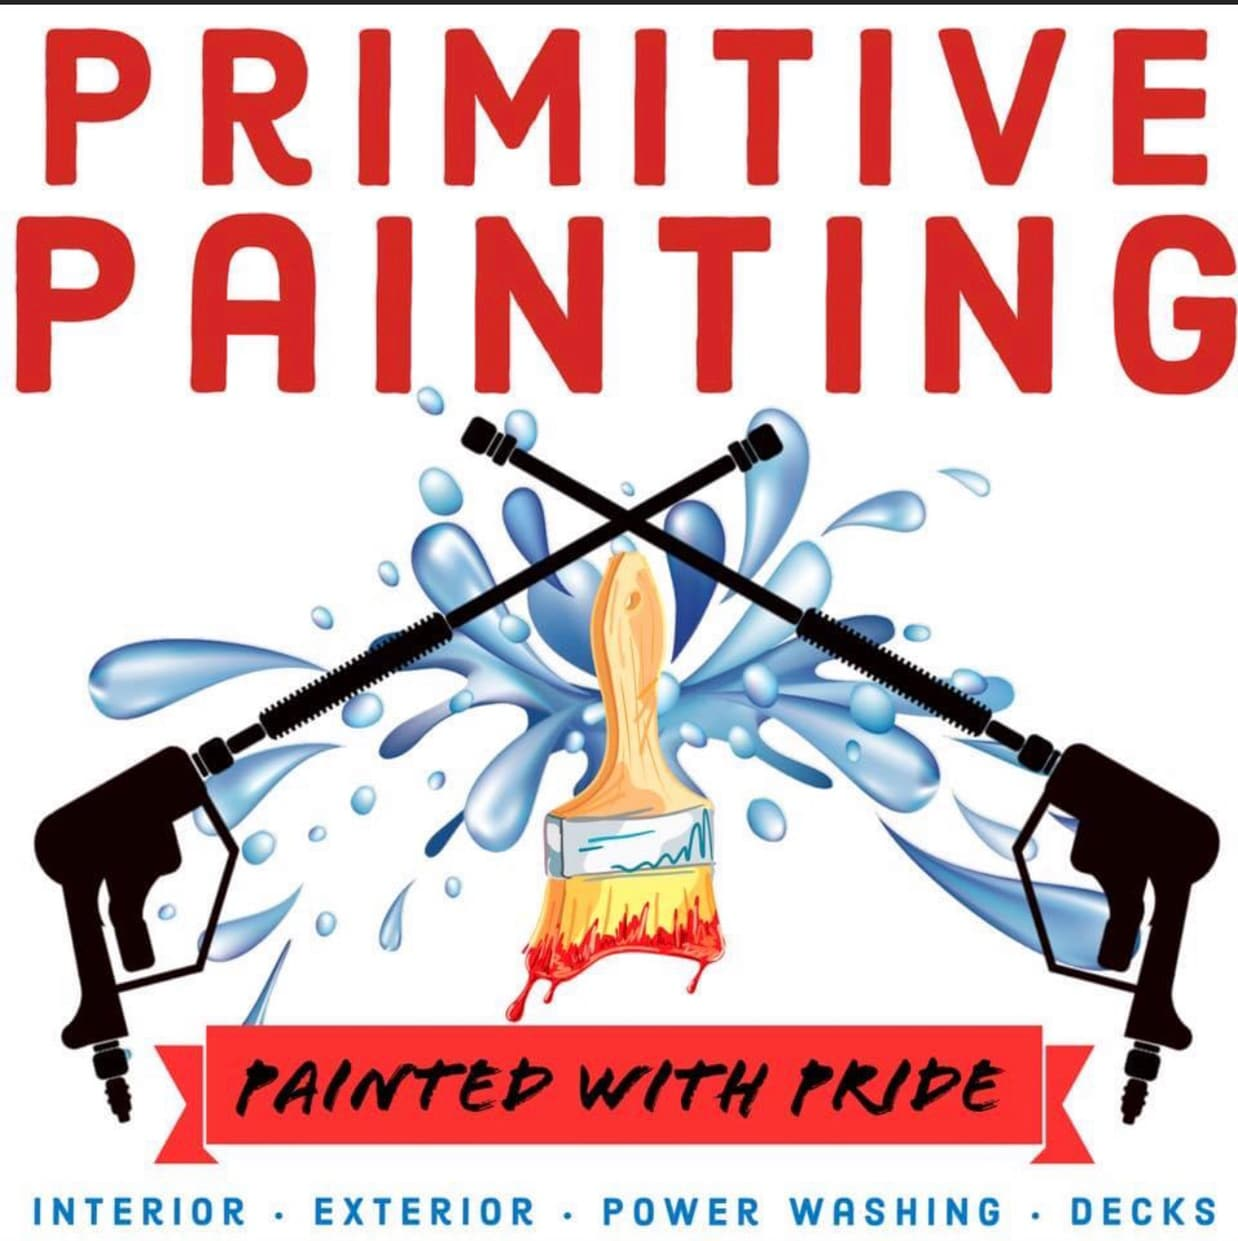 Primitive Painting And Power